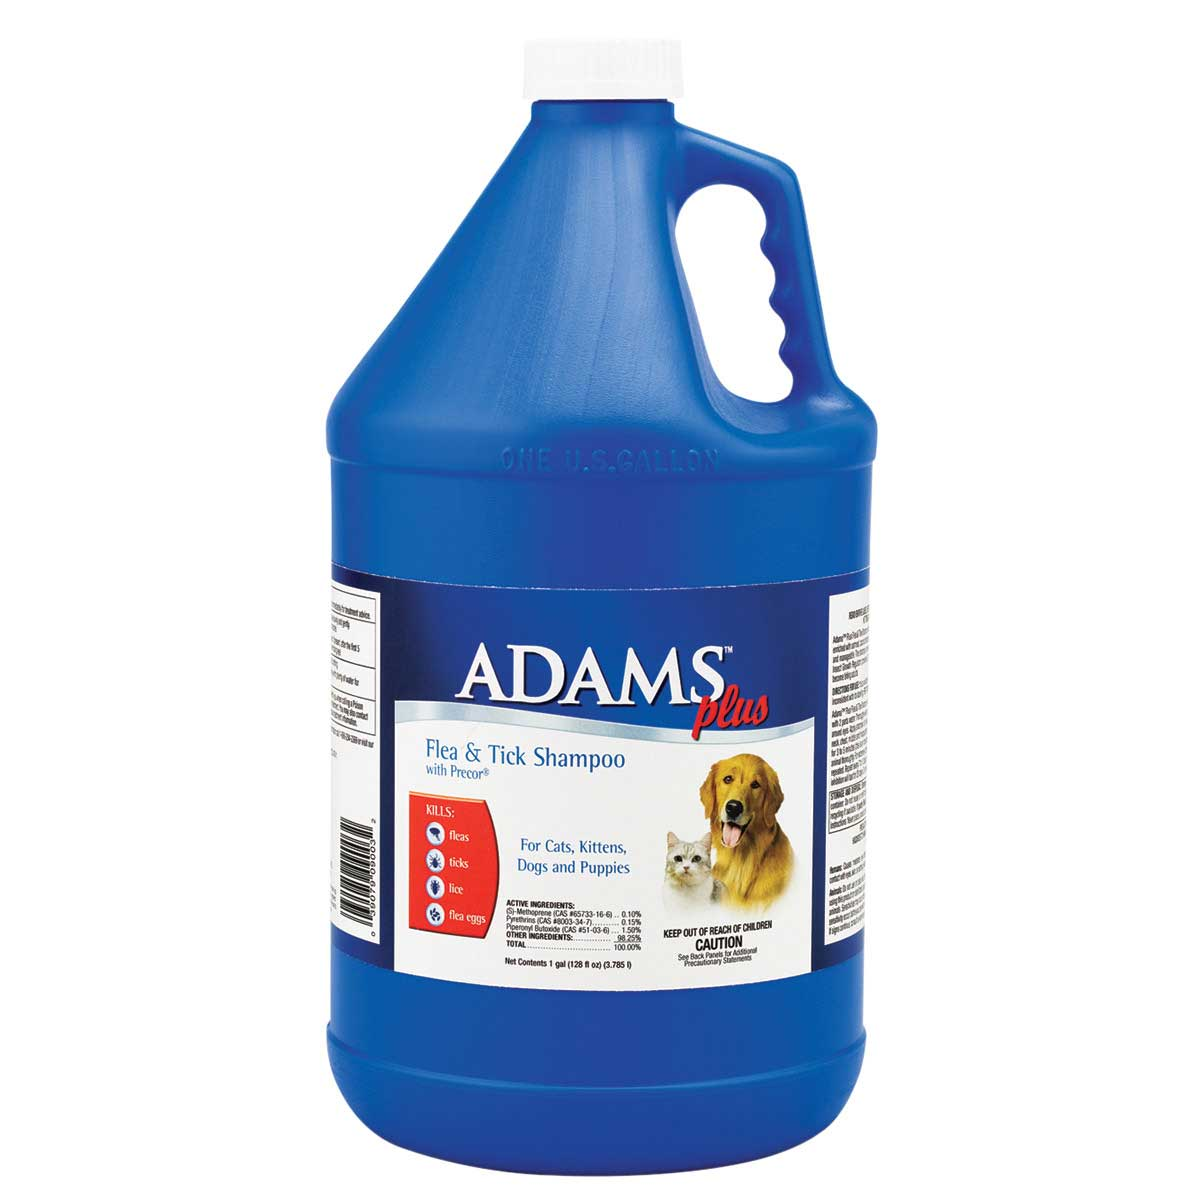 Adams Plus Flea and Tick Shampoo With Precor Gallon - For Cats, Dogs, Puppies and Kittens